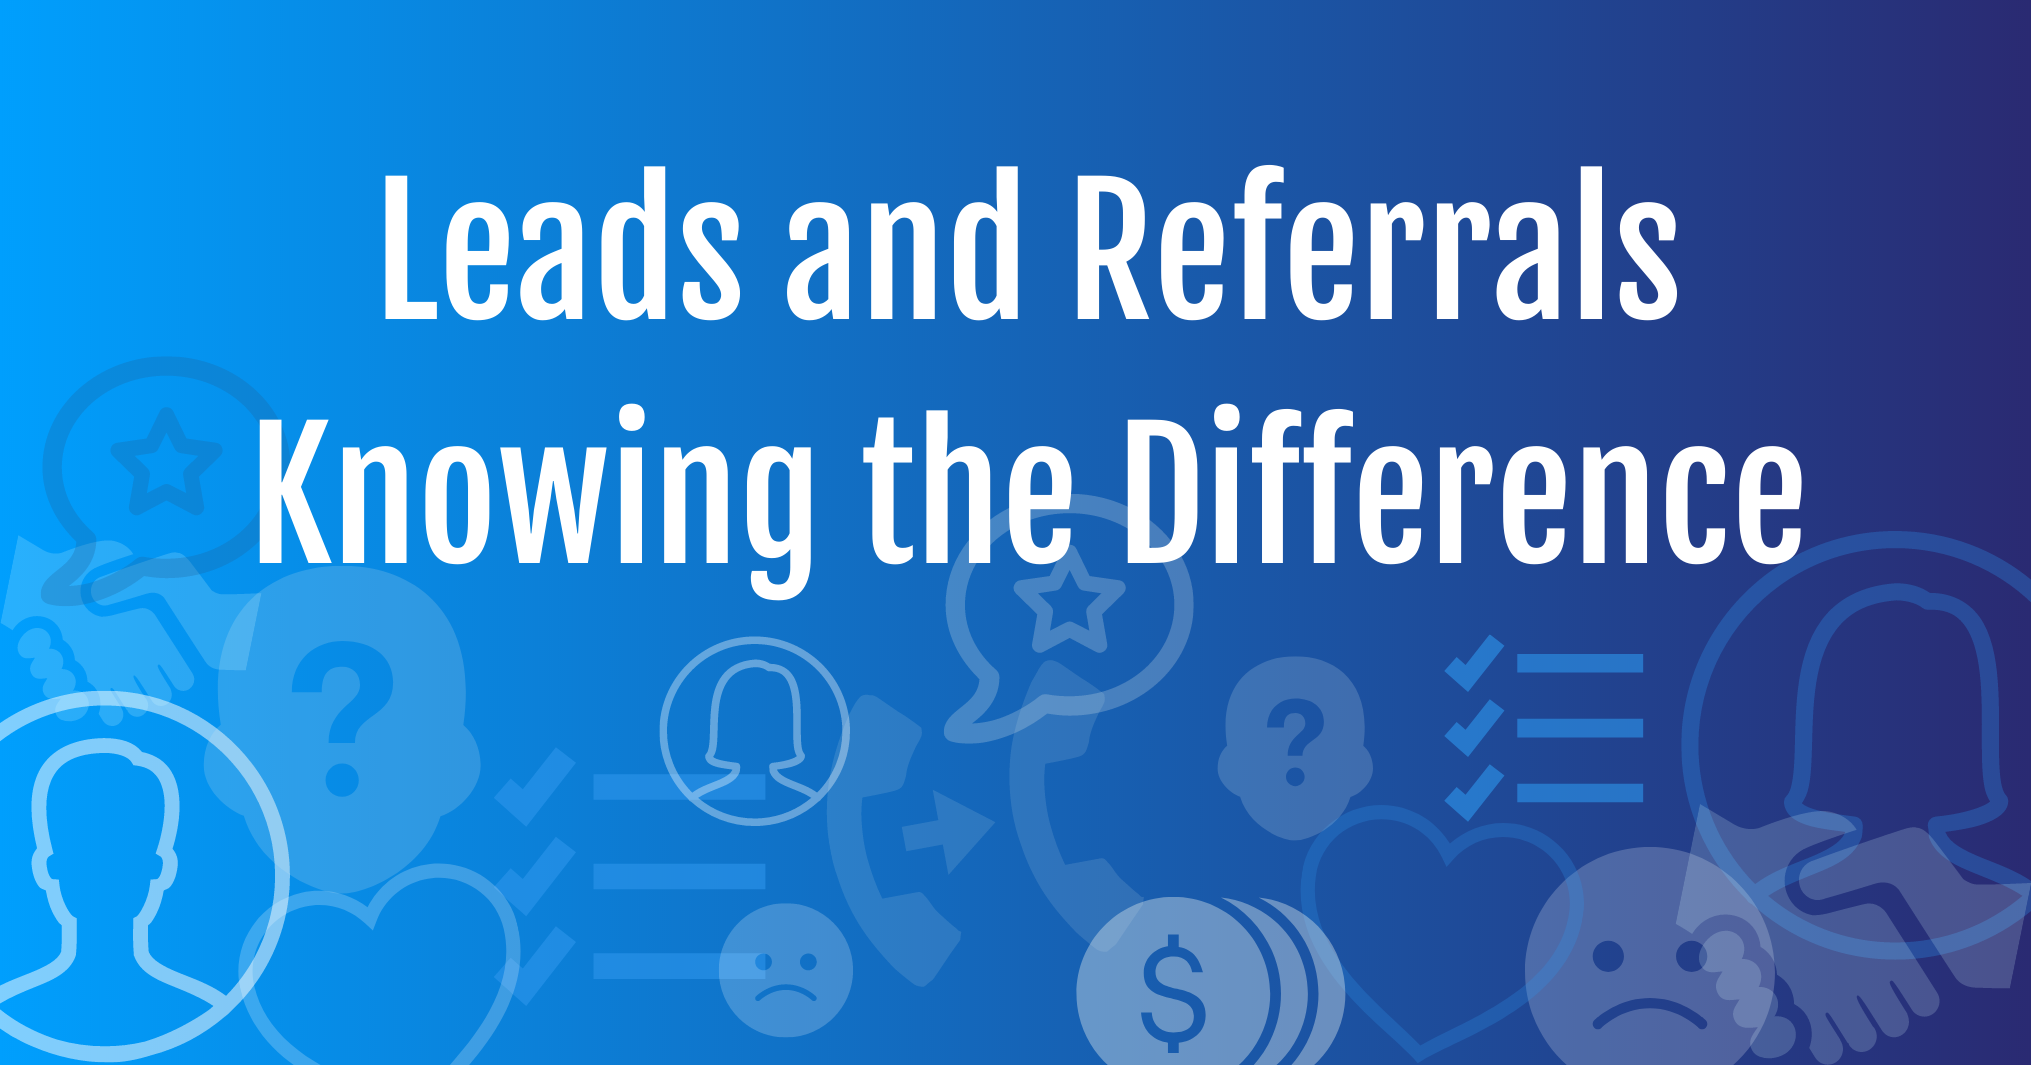 Difference Between Leads and Referrals